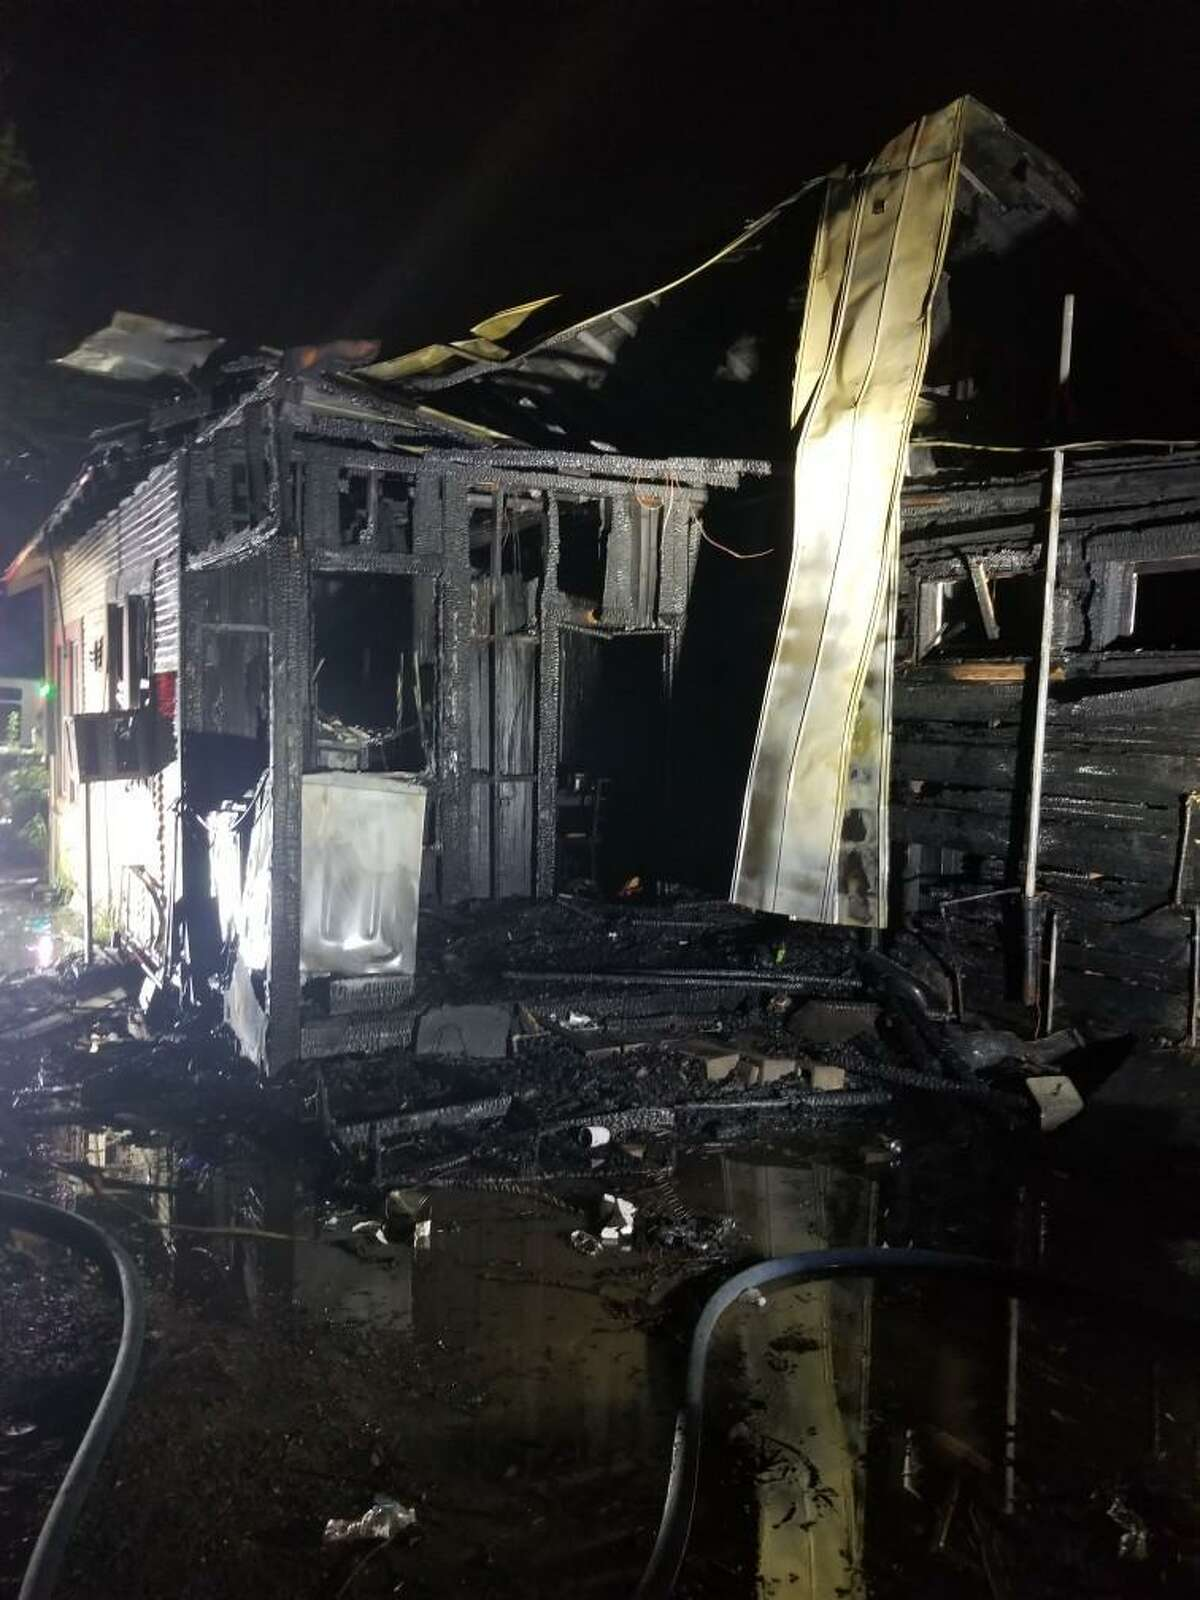 This single-story home on Farragut Street was damaged in a fire on Friday morning.